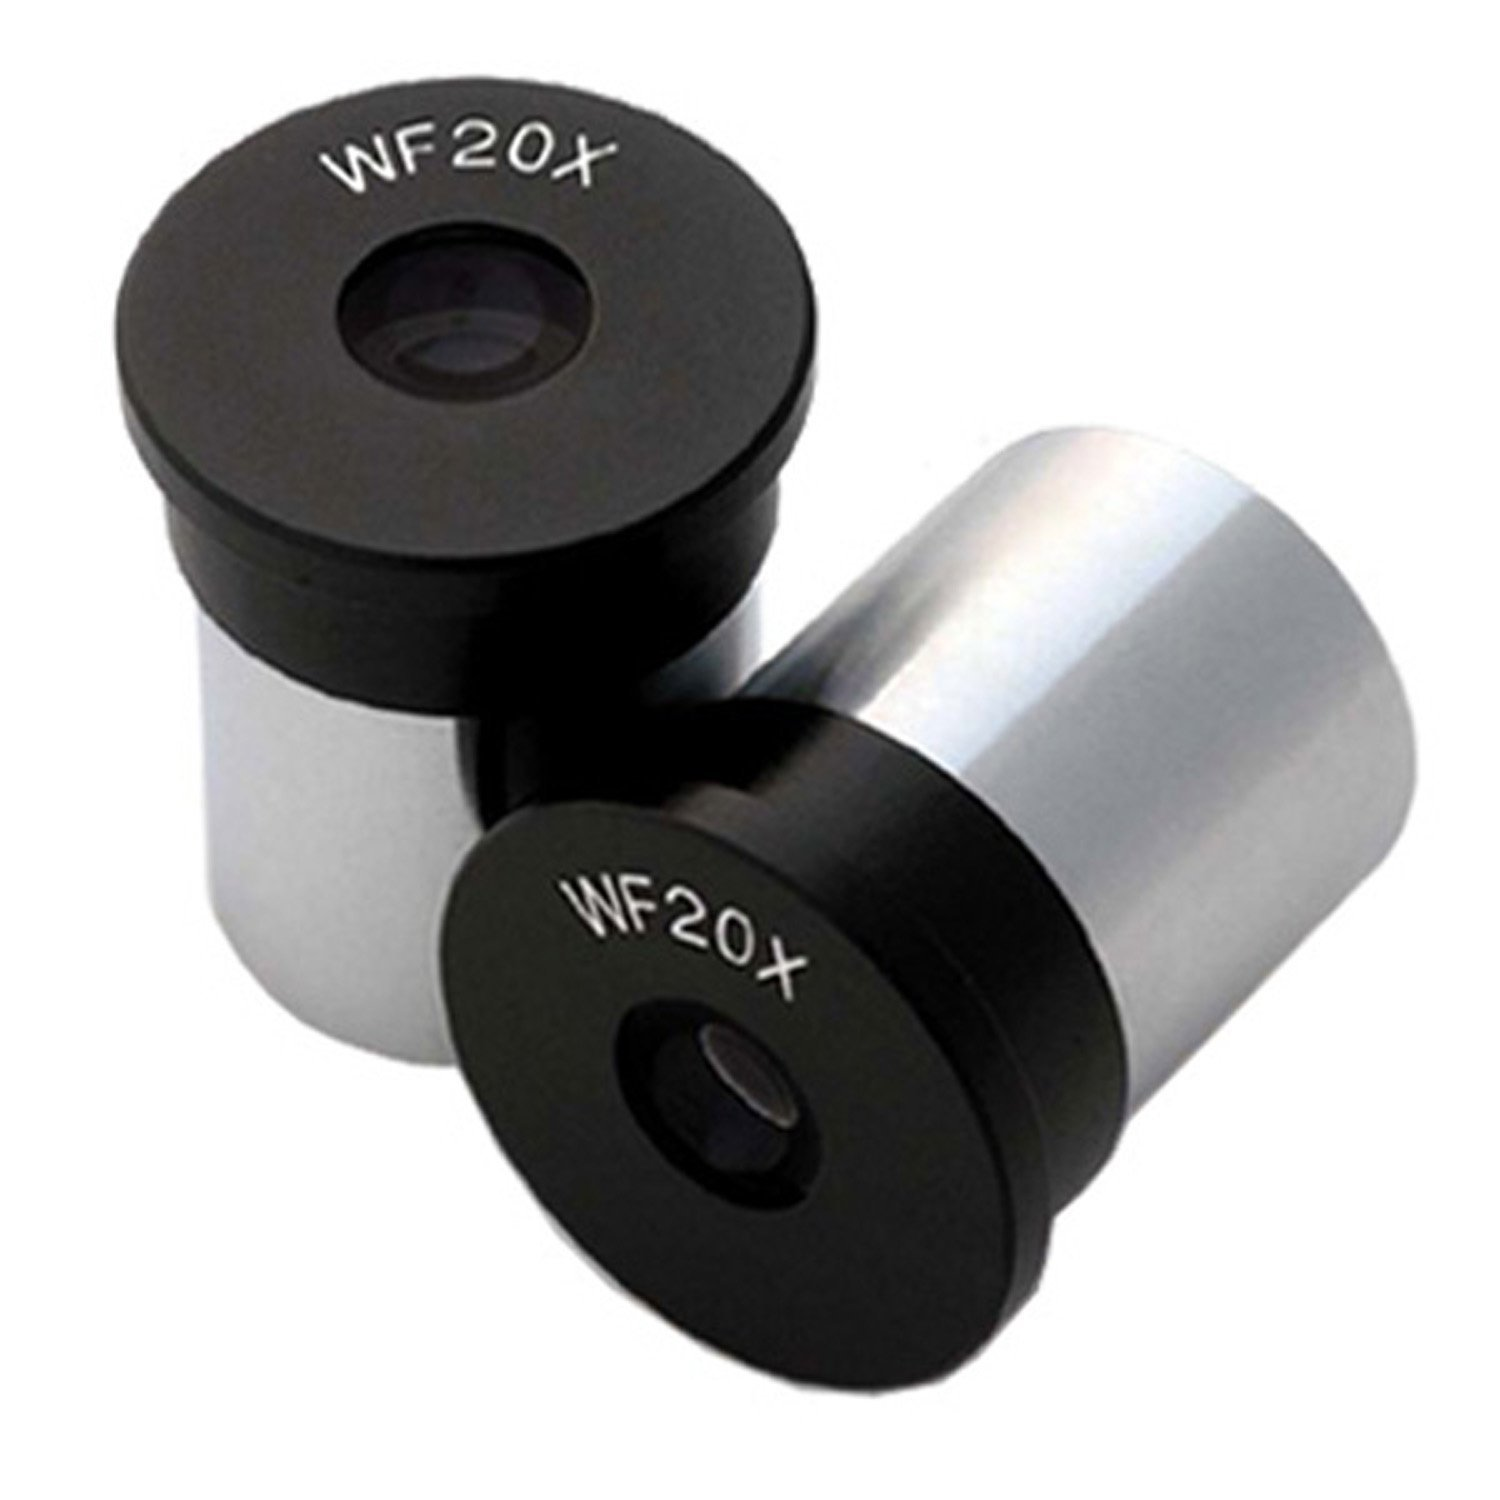 MIKO Pair of WF20X Microscope Eyepieces (23mm)